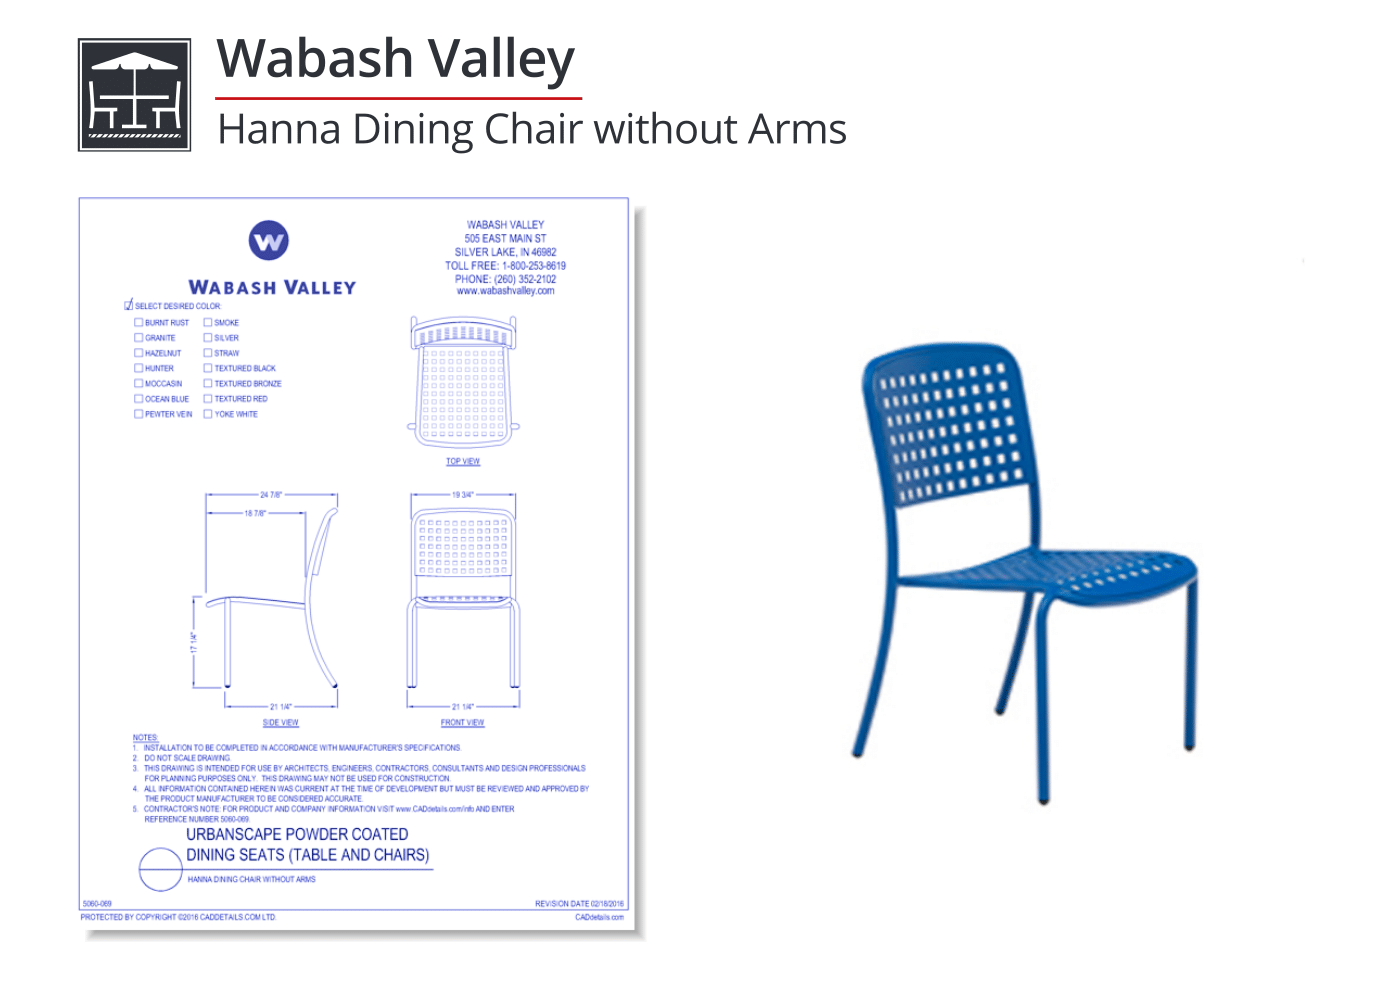 Wabash-Valley-Hanna-Dining-Chair-without-Arms-CAD-Drawing.png